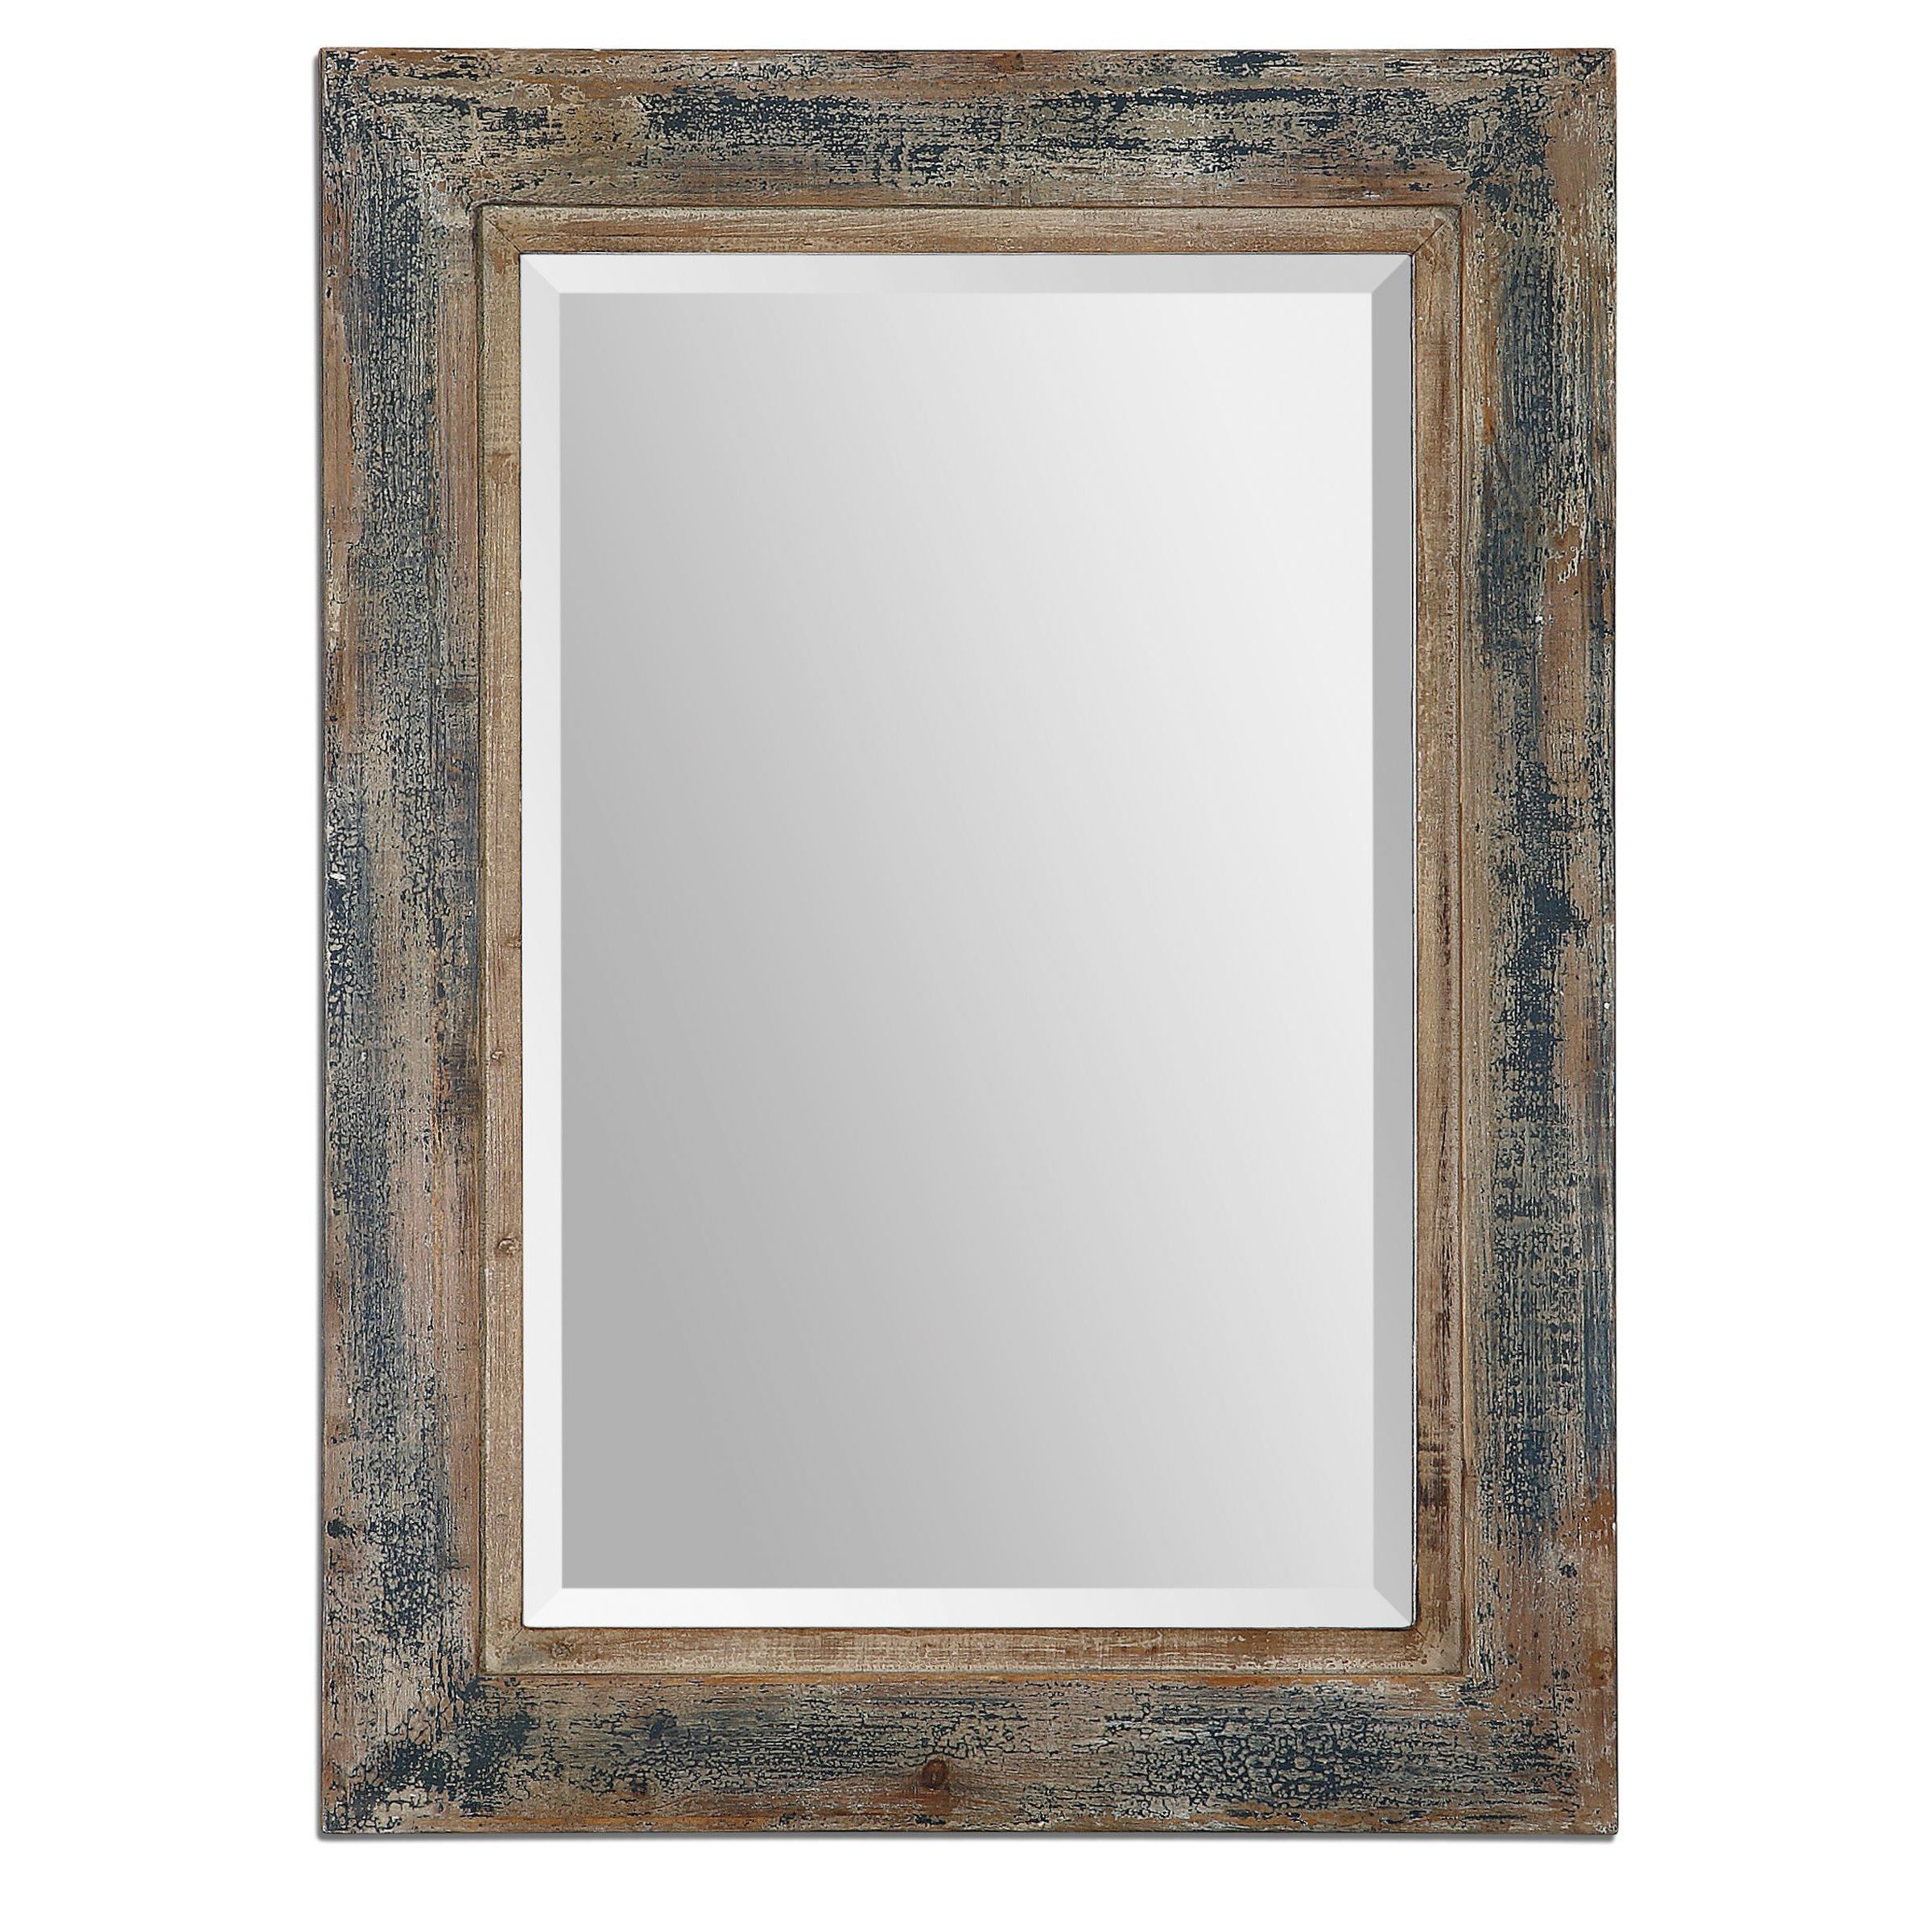 Widely Used Janie Rectangular Wall Mirrors Regarding Uttermost Bozeman Distressed Blue Wood Mirror In  (View 19 of 20)